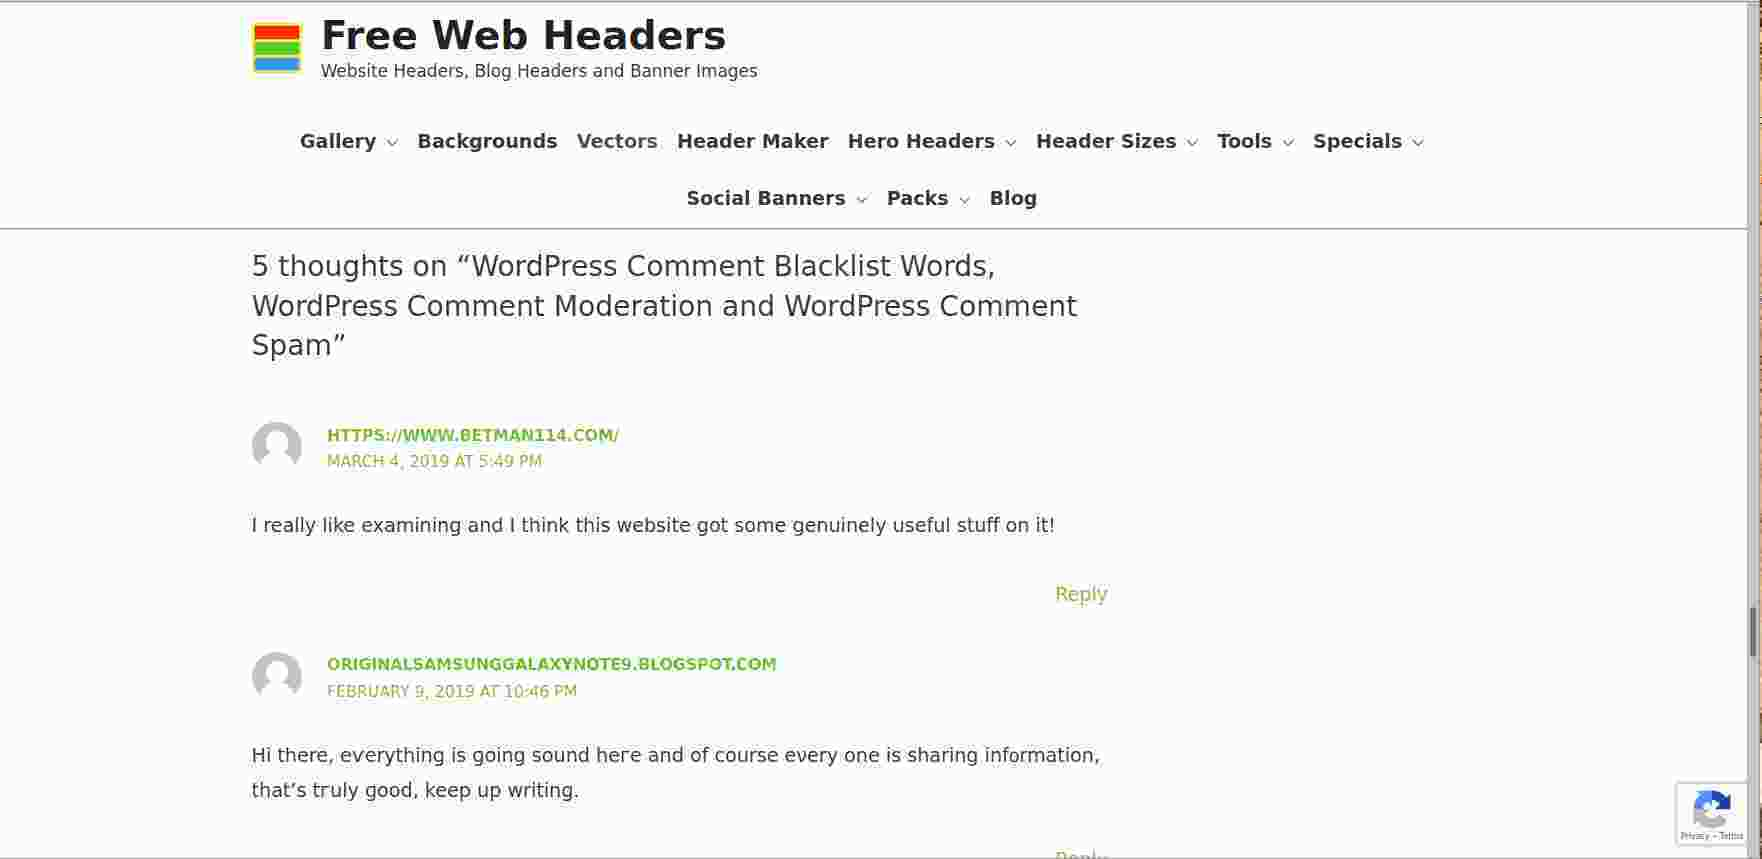 image of spam comment on blog